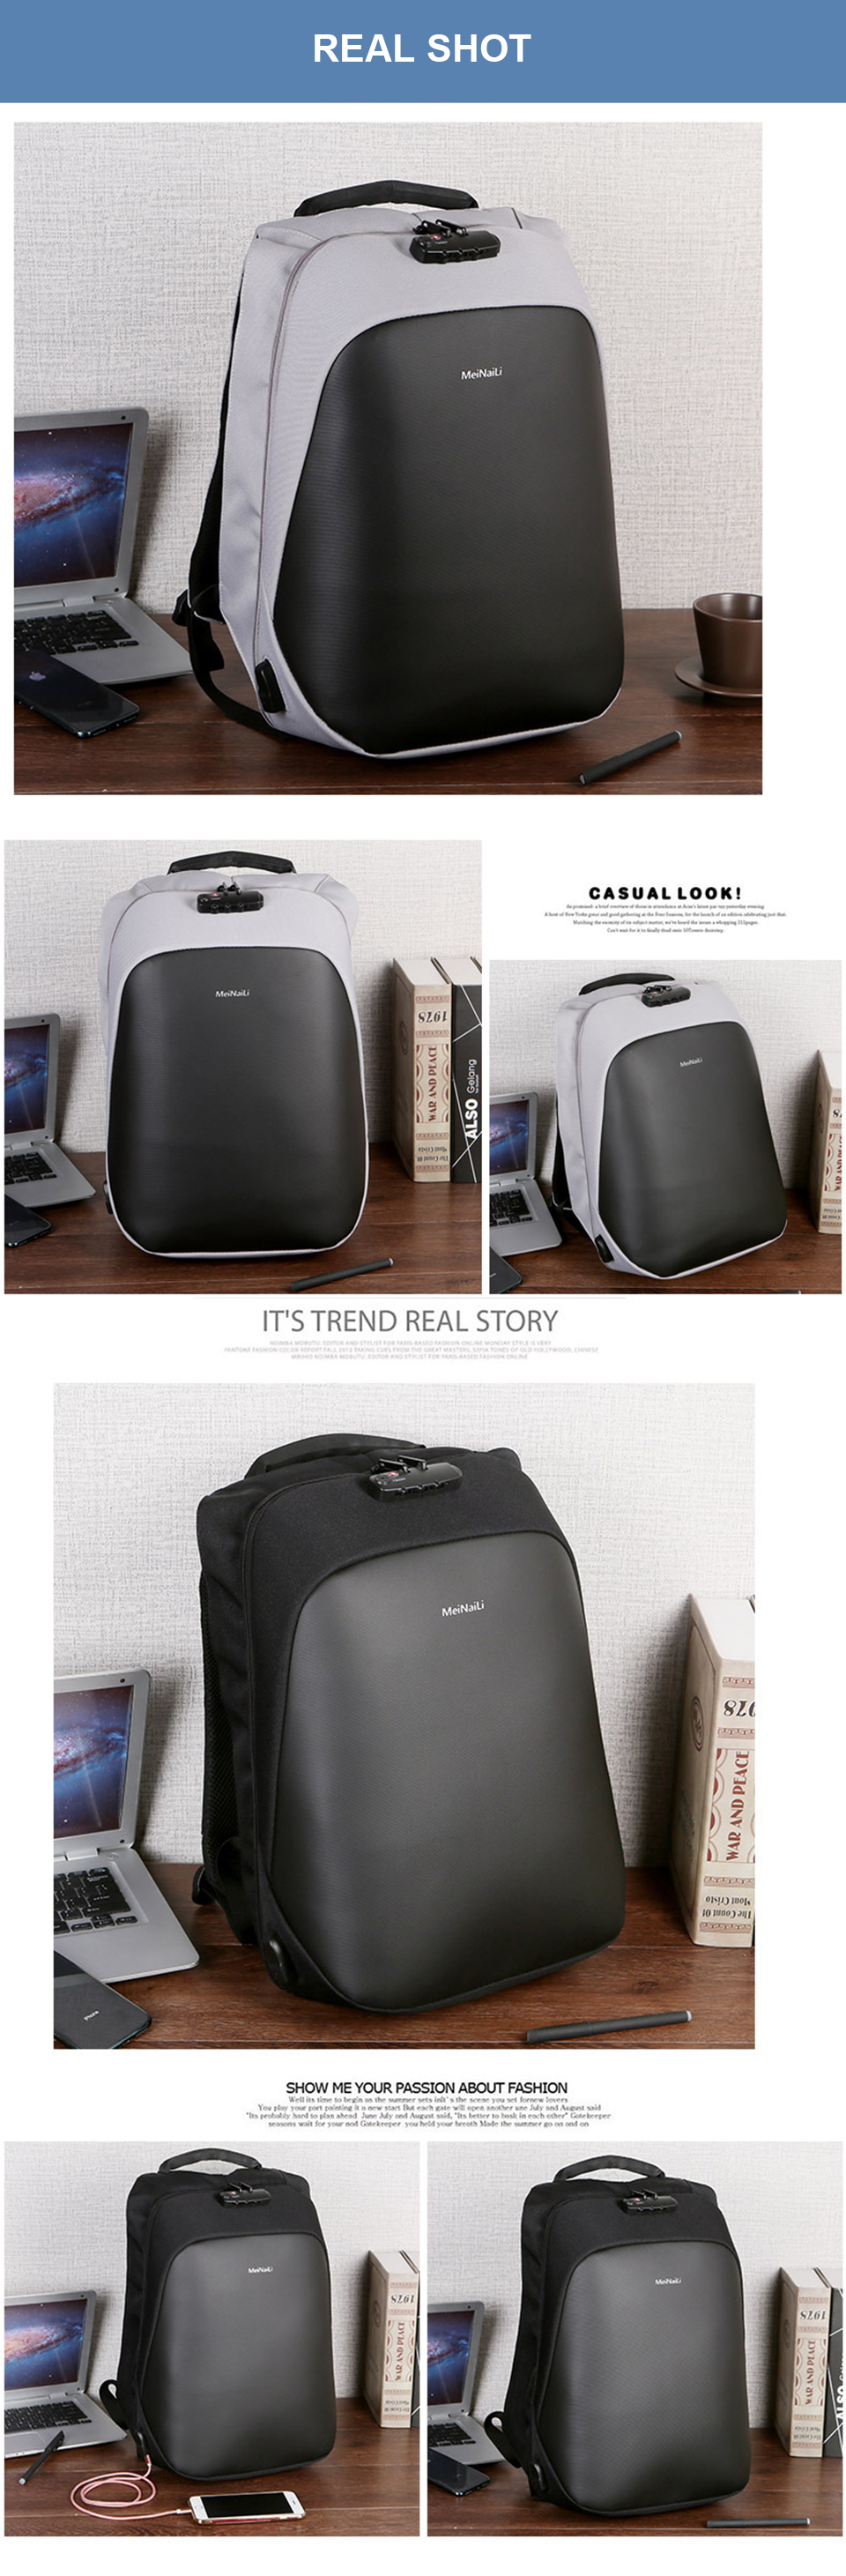 9 Anti Theft Backpacks Man Bag Large Capacity 15.6 Inch Laptop Notebook Backpack Business USB Back Pack Travel luggage Backpacking